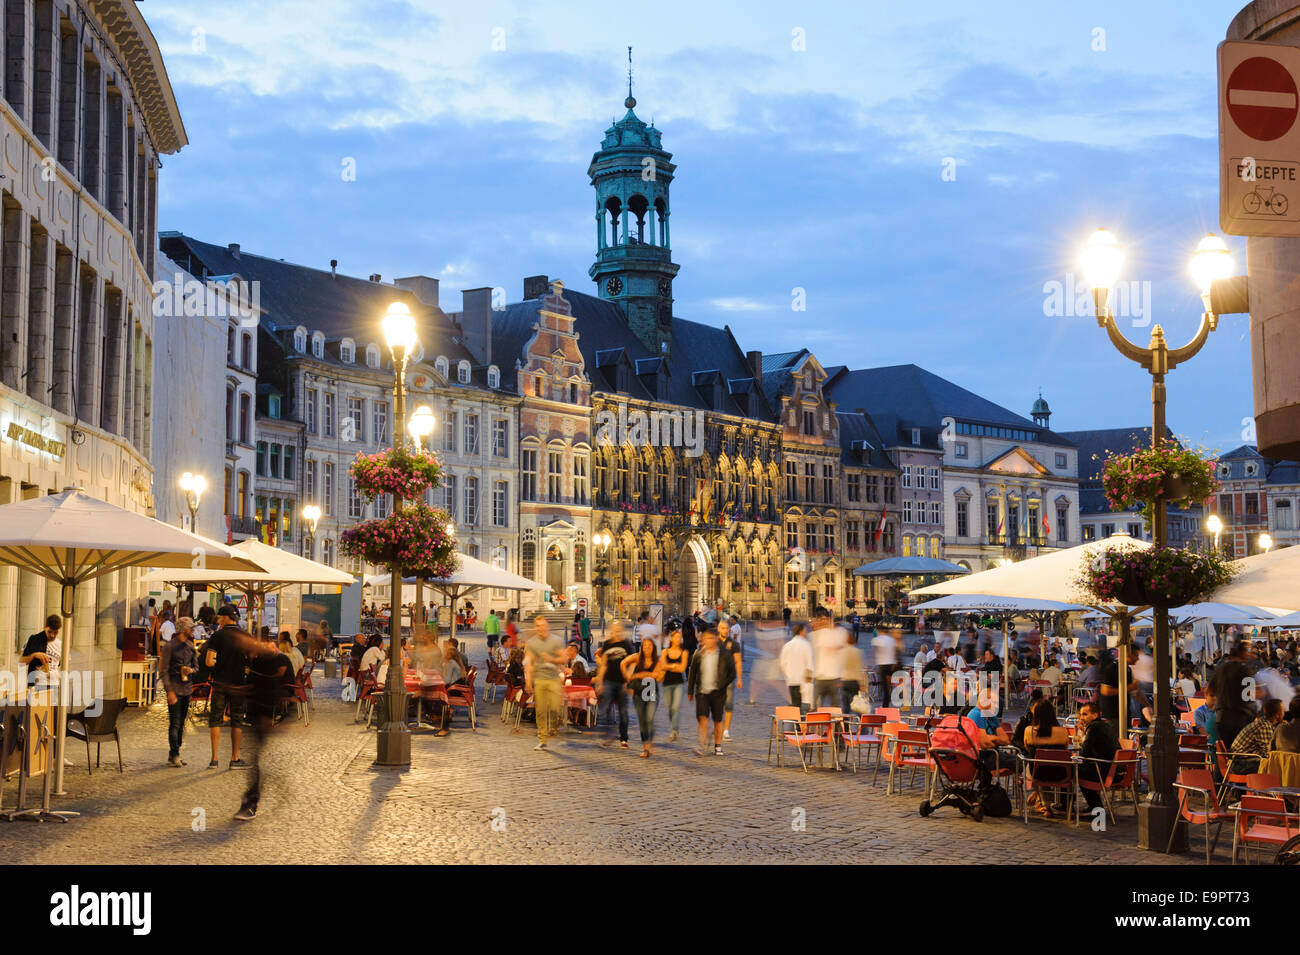 belebte grand place bei d mmerung rathaus mons hennegau wallonie stock photo 74875335 alamy. Black Bedroom Furniture Sets. Home Design Ideas